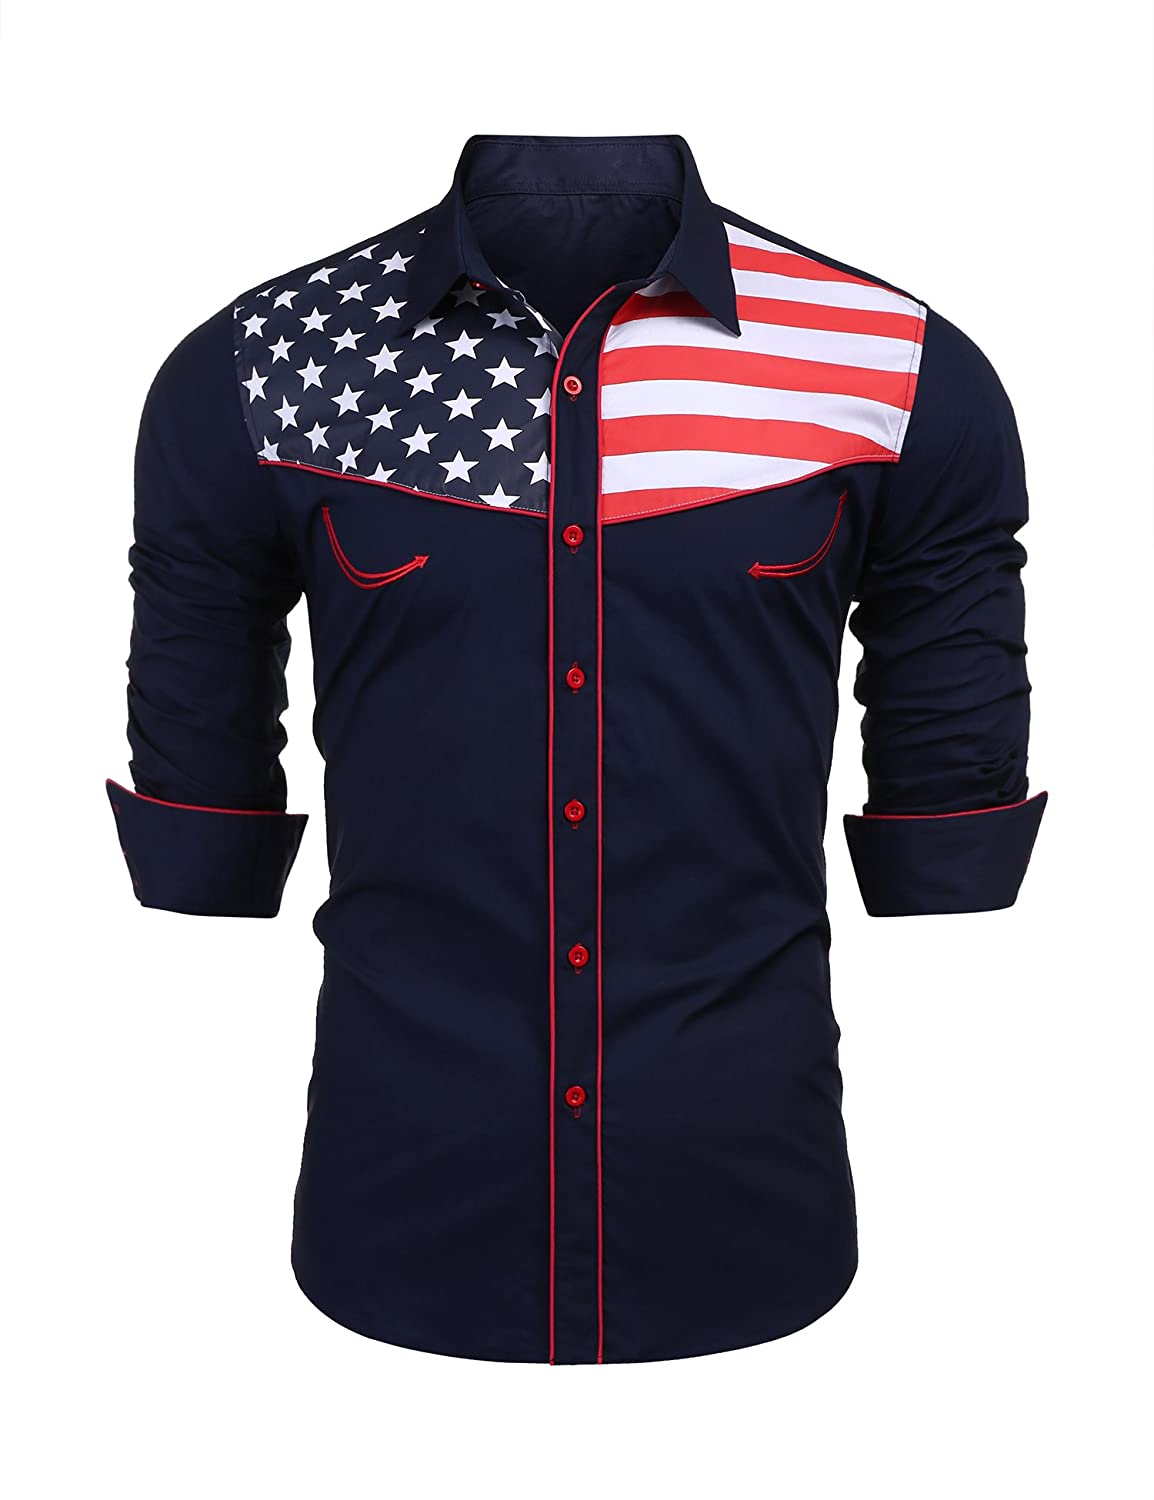 JINIDU Mens American Flag Button Down Shirt Casual Long Sleeve Dress Shirts